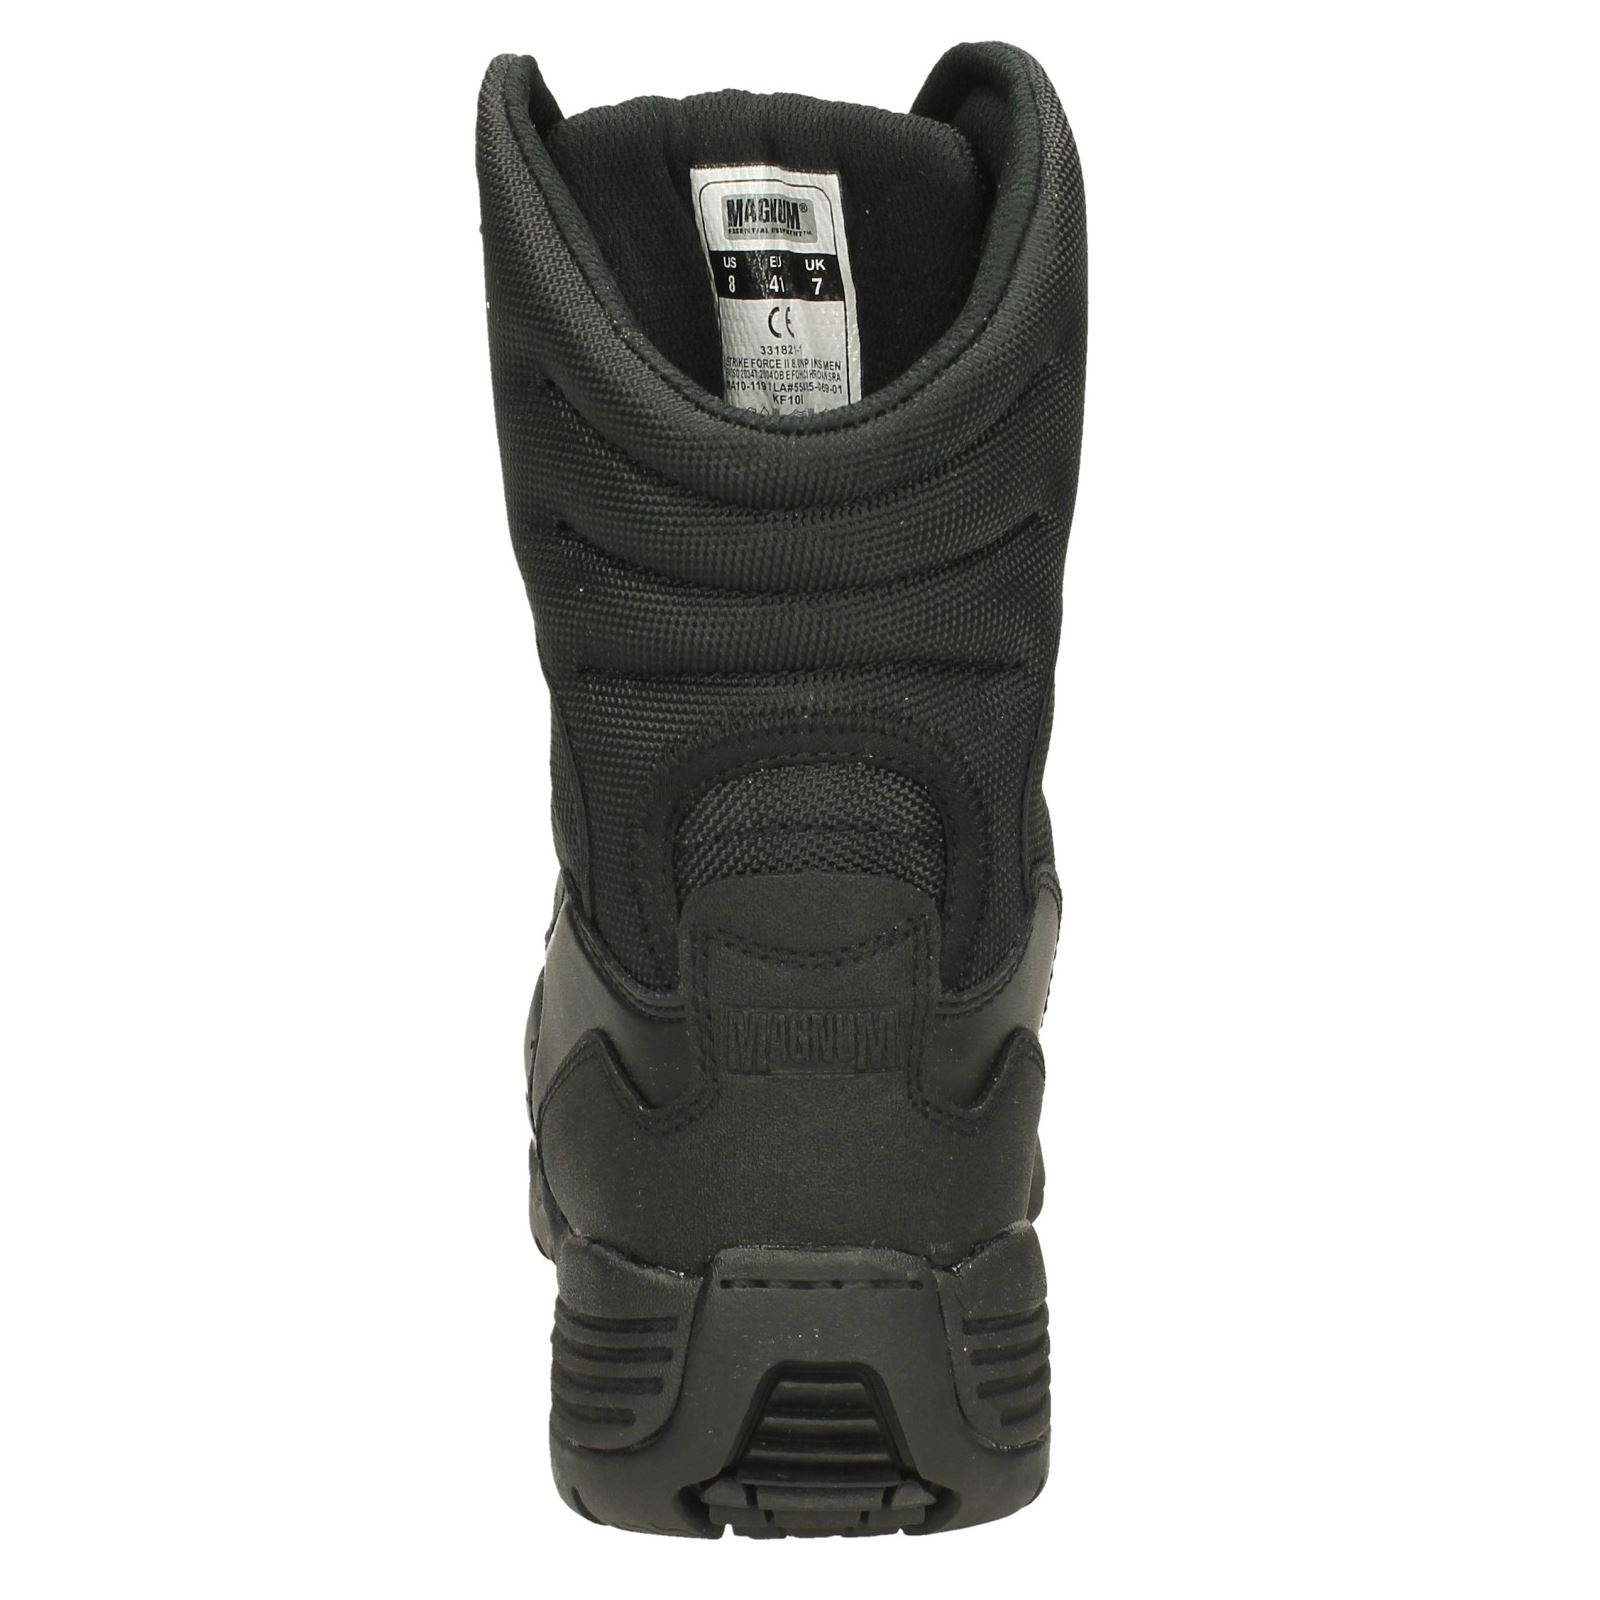 Mens-Magnum-Waterproof-Insulated-Boots-039-Strike-Force-II-039 thumbnail 5